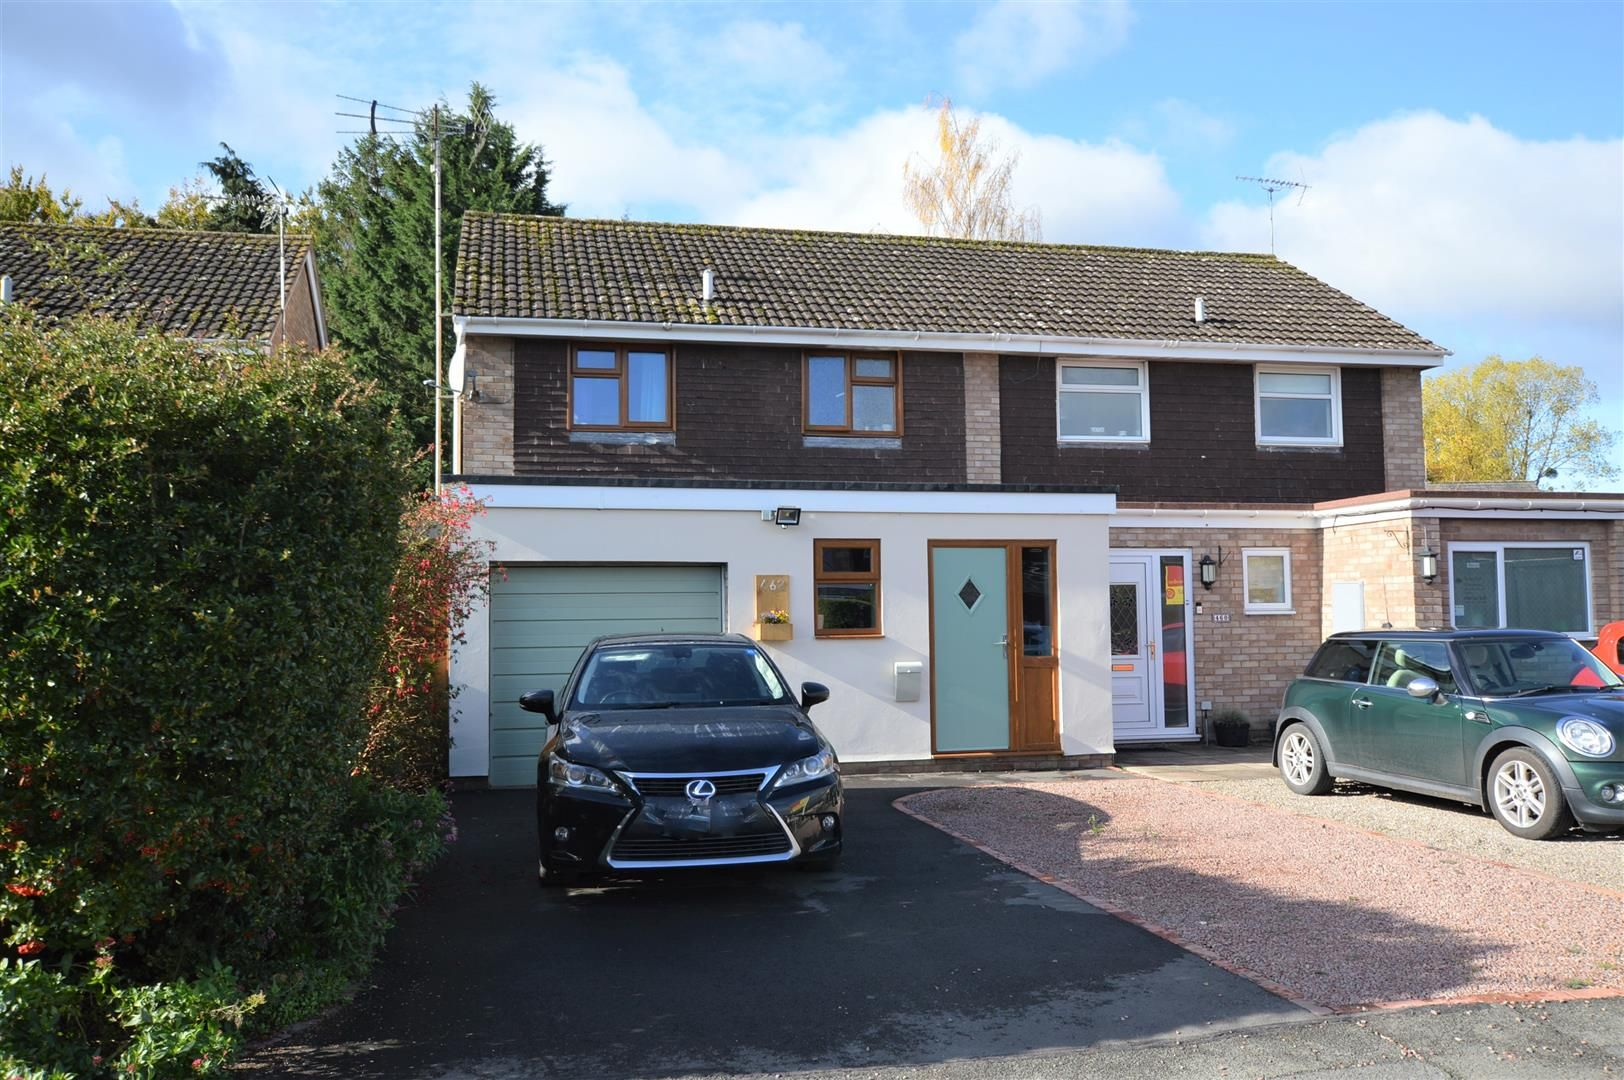 3 bed semi-detached for sale in Leominster - Property Image 1